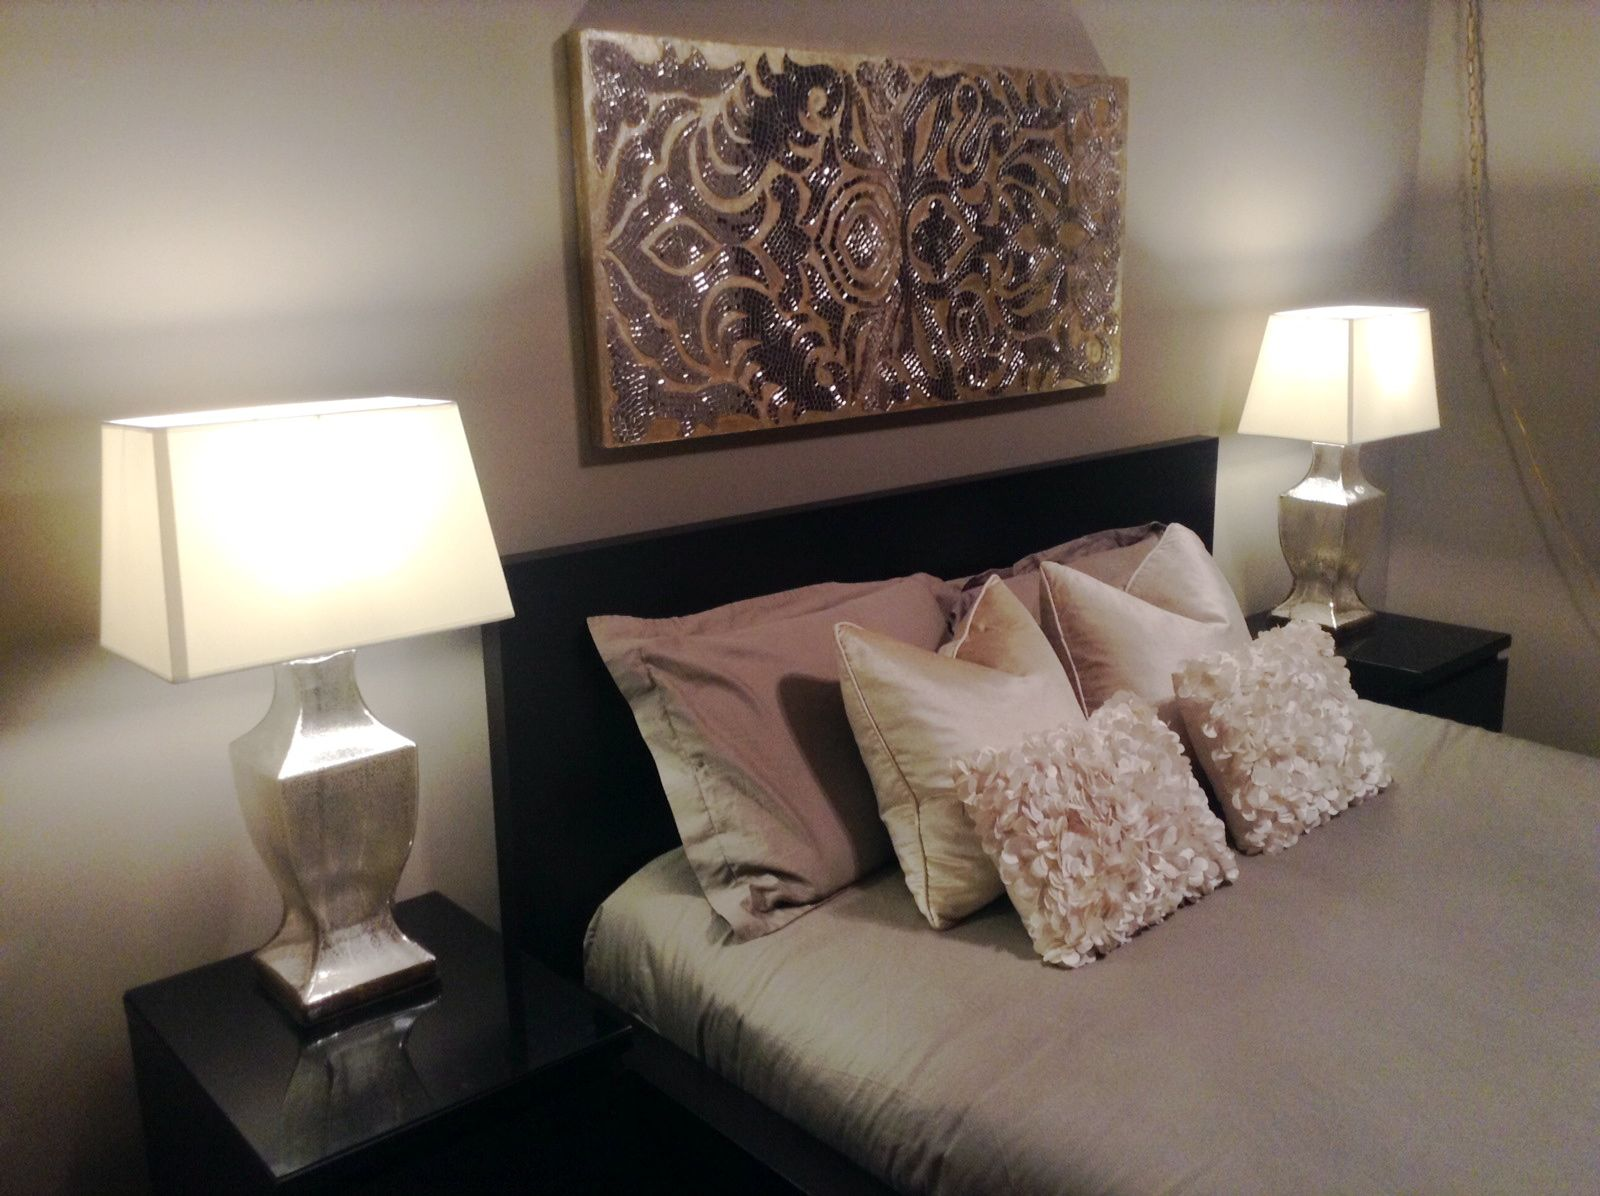 Our gorgeous @Pier Mallory 1 Imports pillows & Mirrored ...